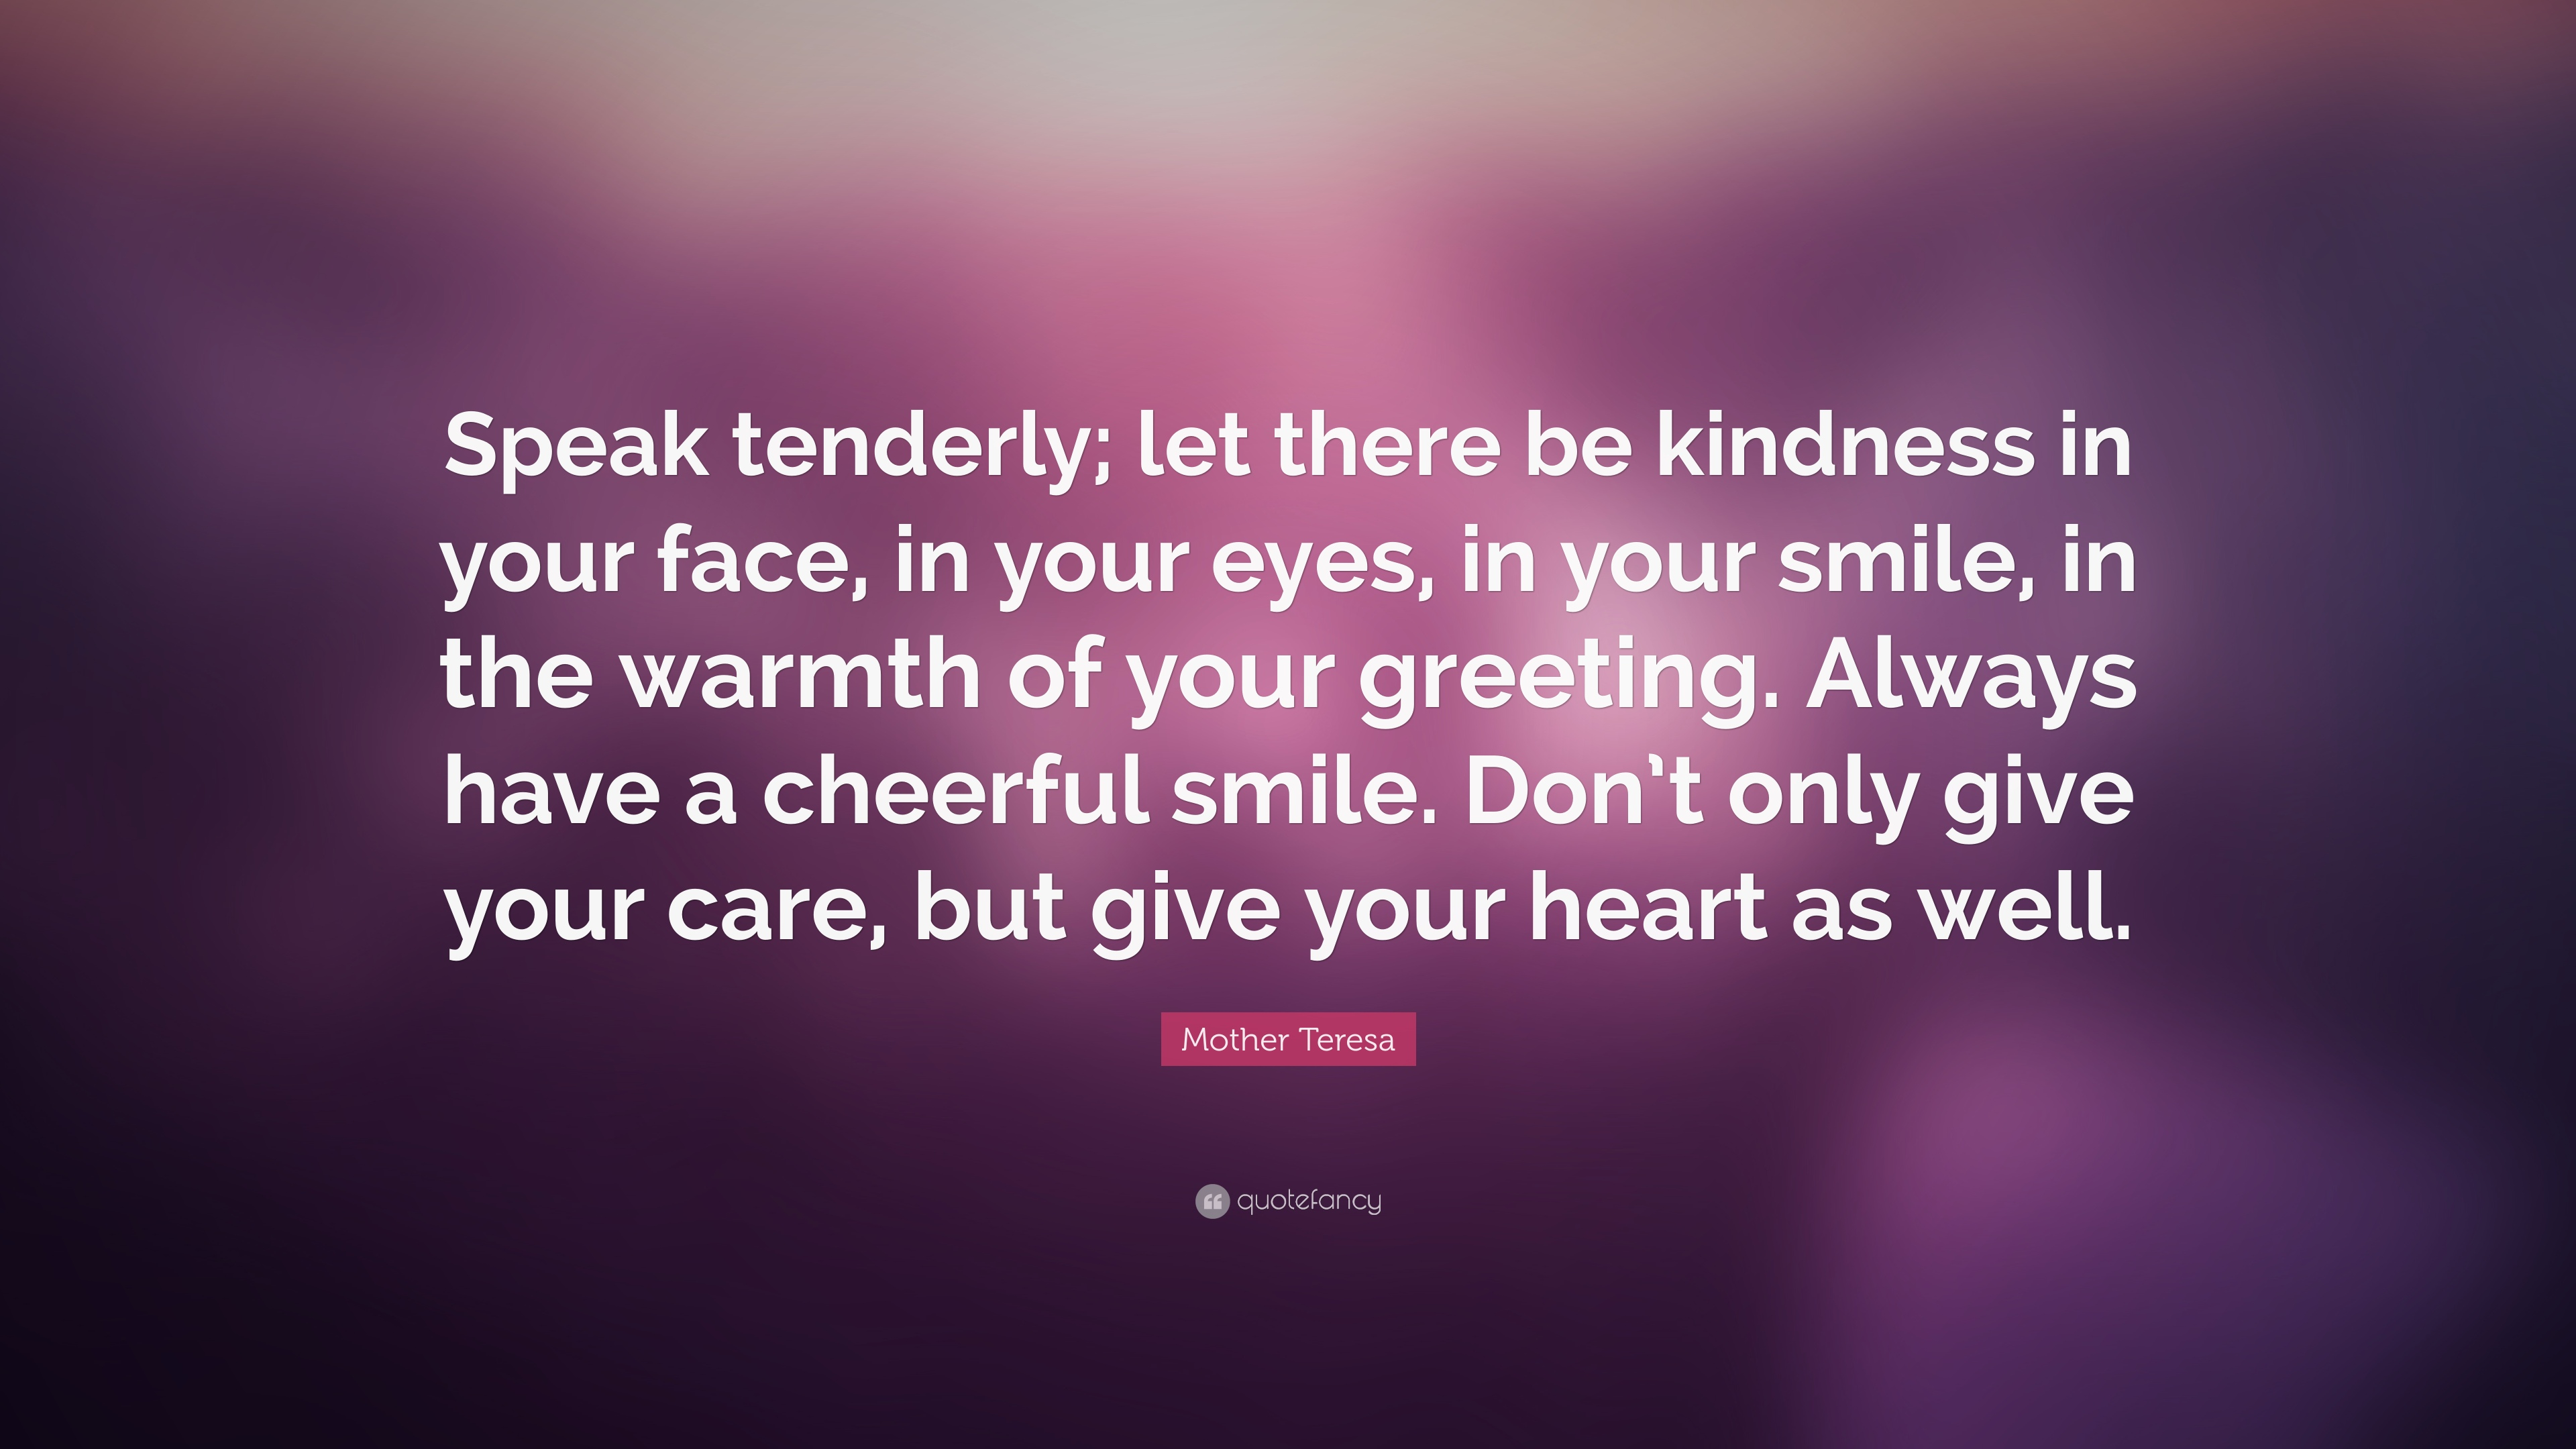 Mother Teresa Quote Speak Tenderly Let There Be Kindness In Your